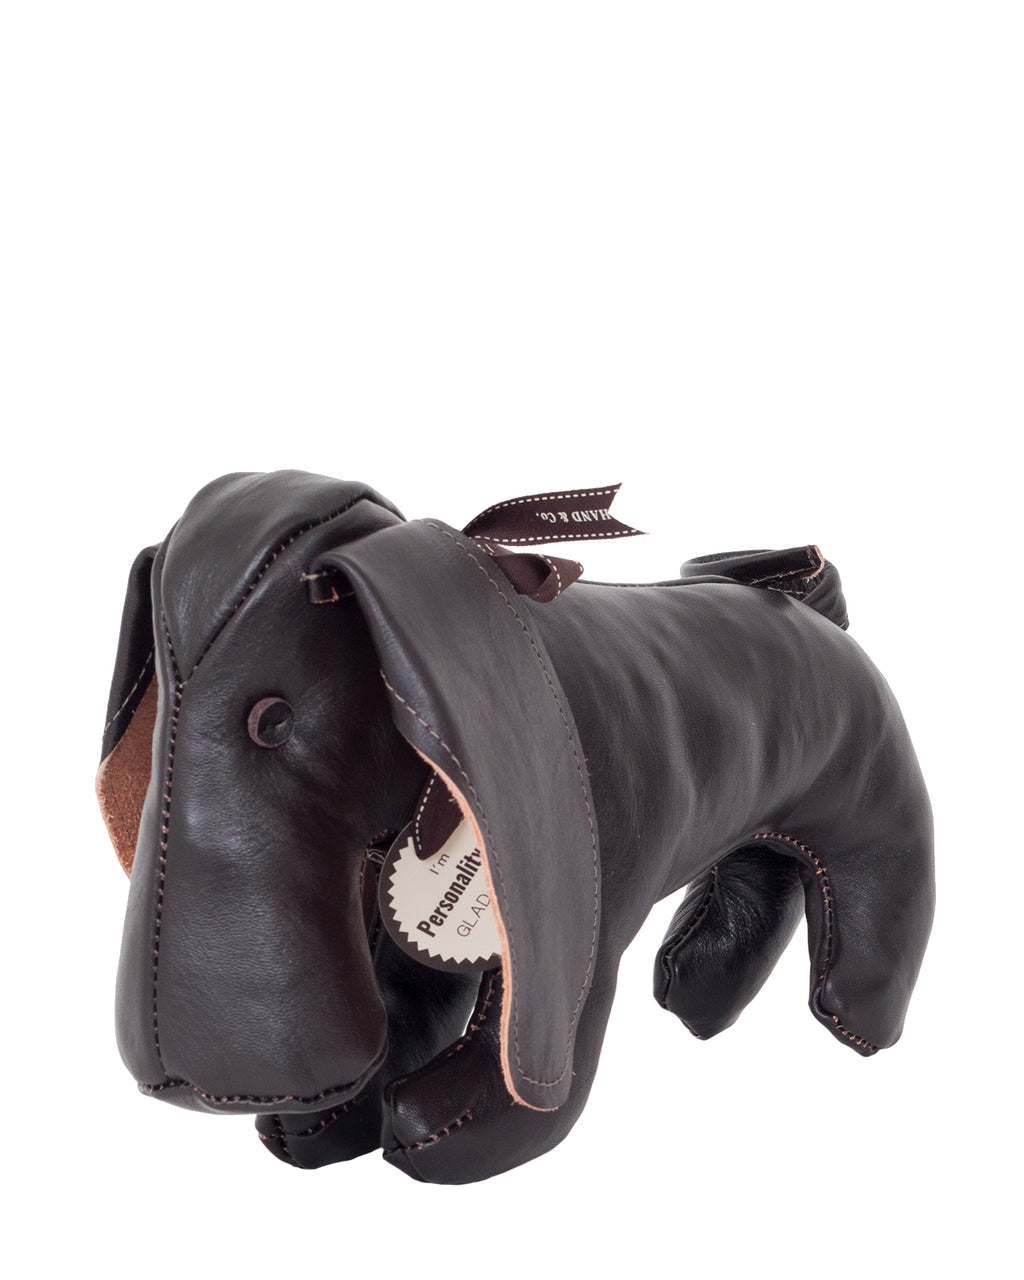 Glad Hand & Co, Personality Pet, Dark Brown